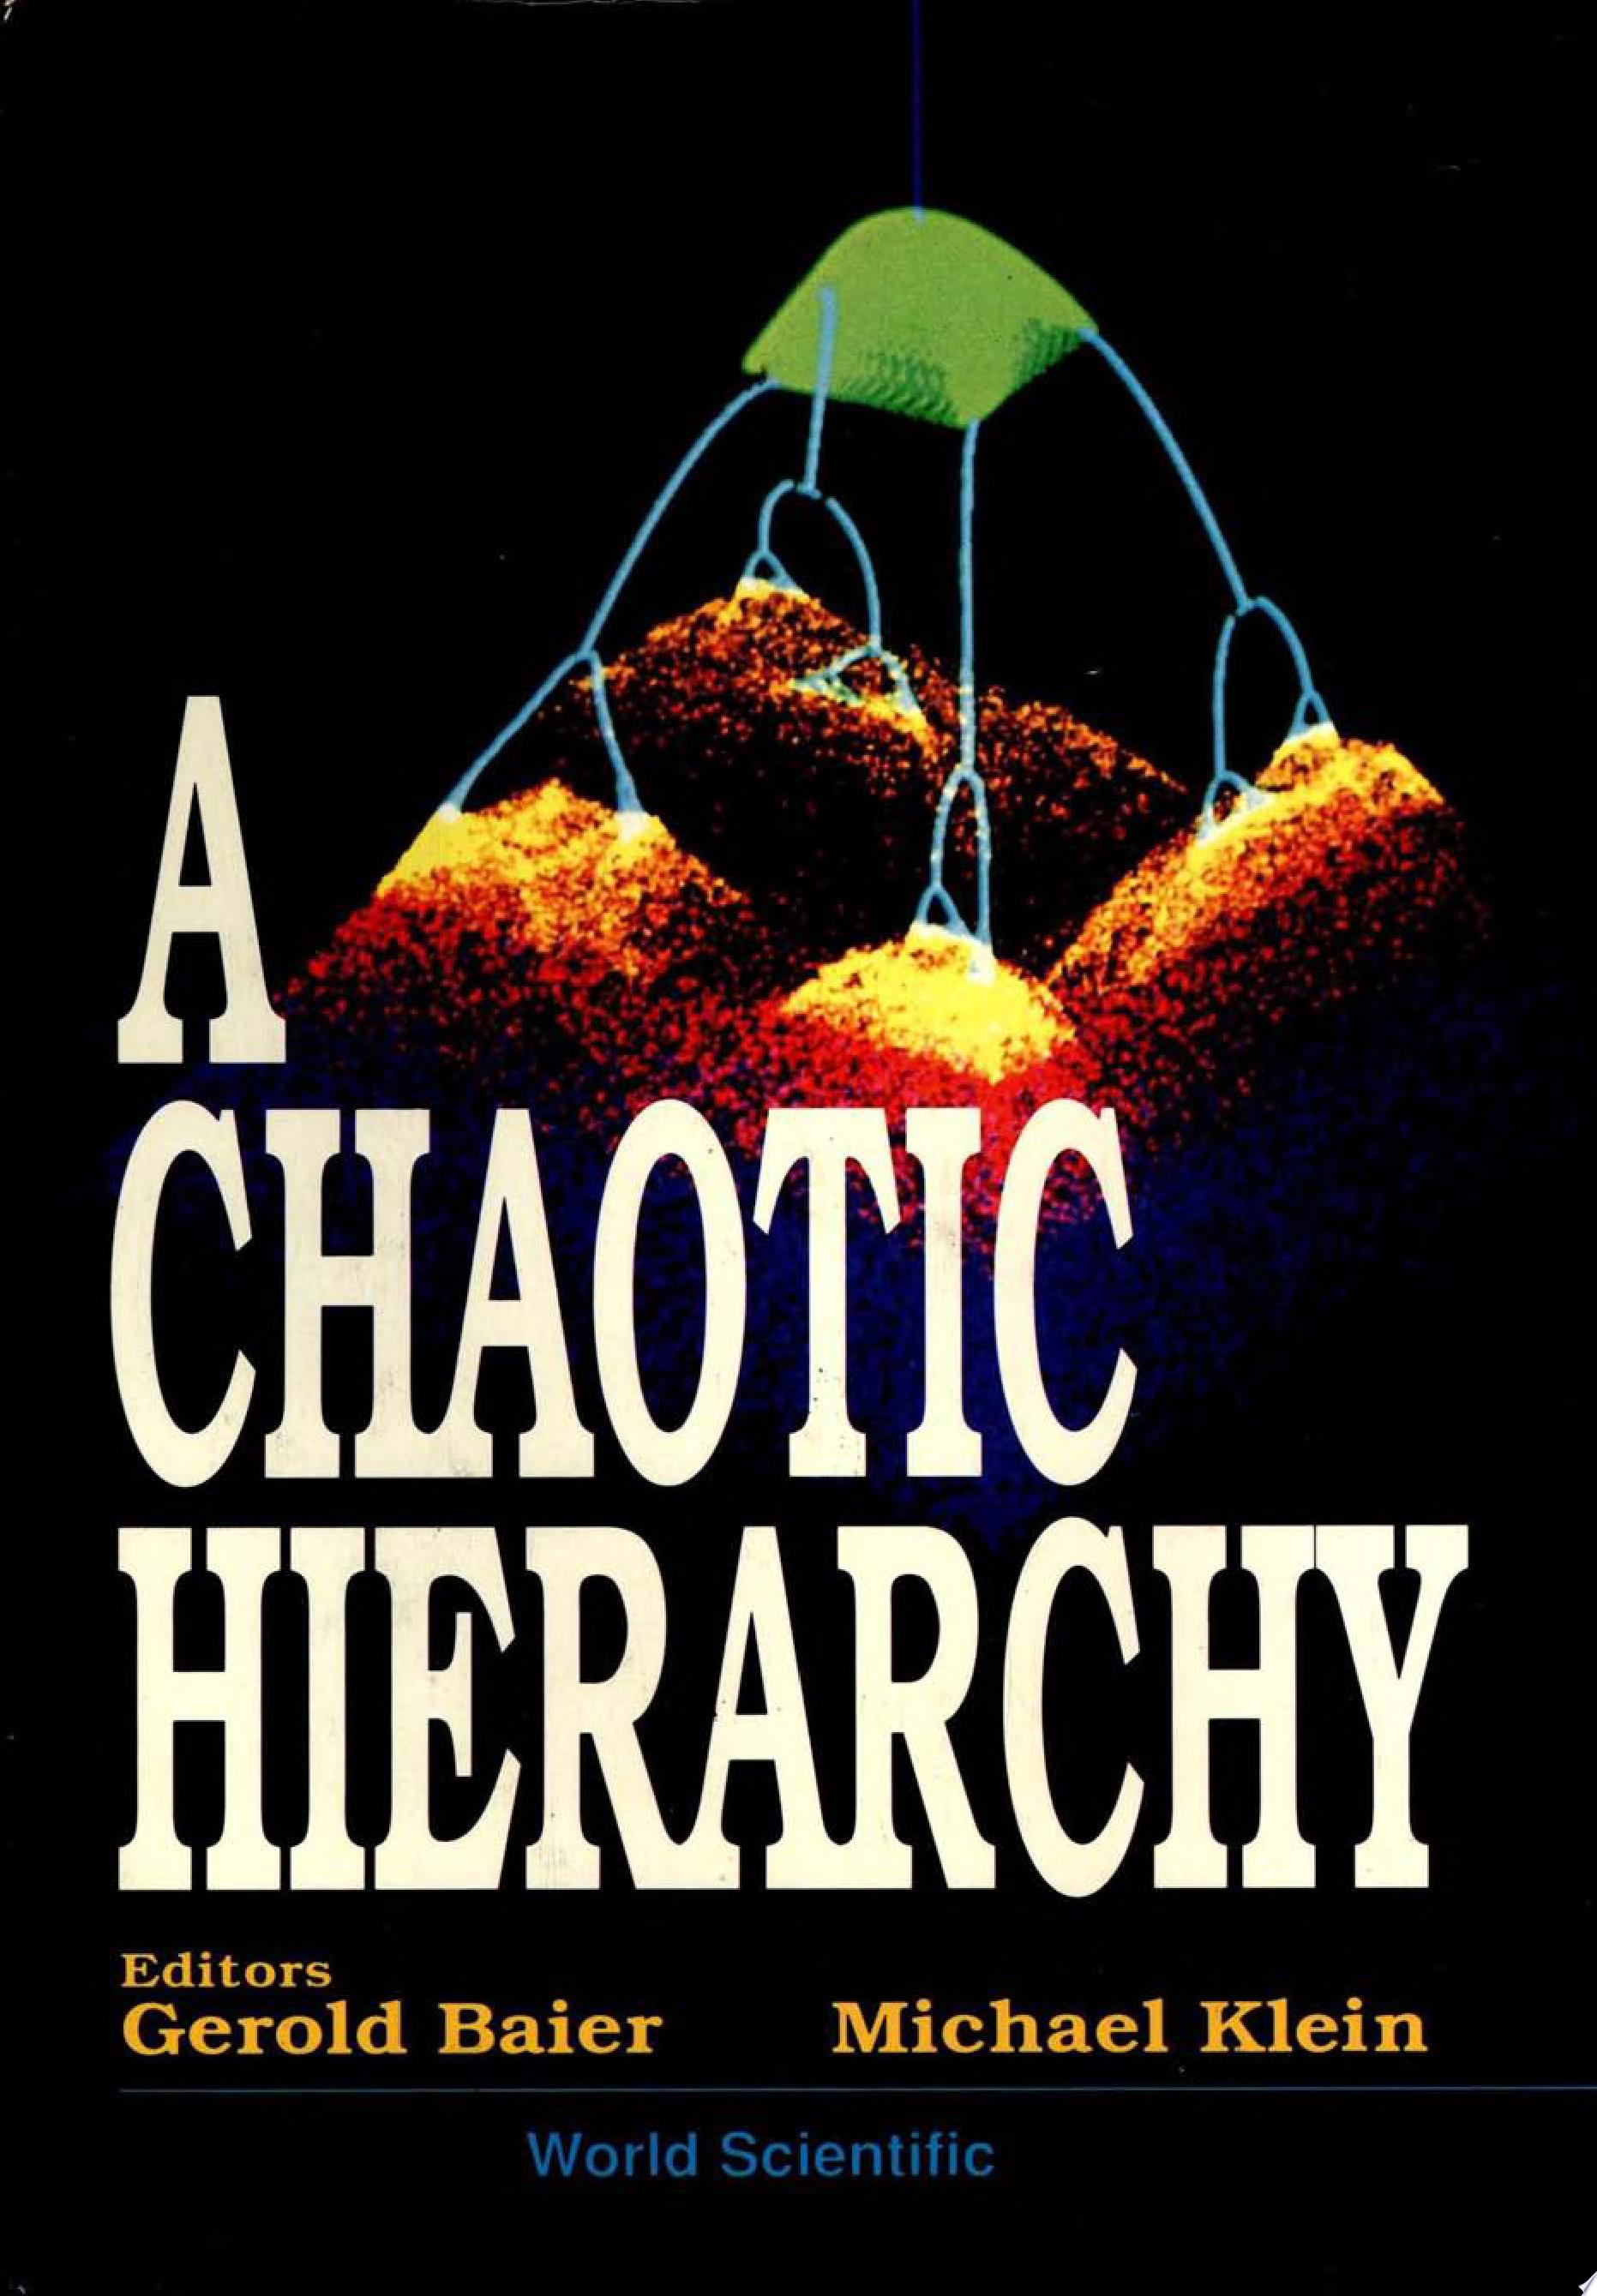 A Chaotic Hierarchy